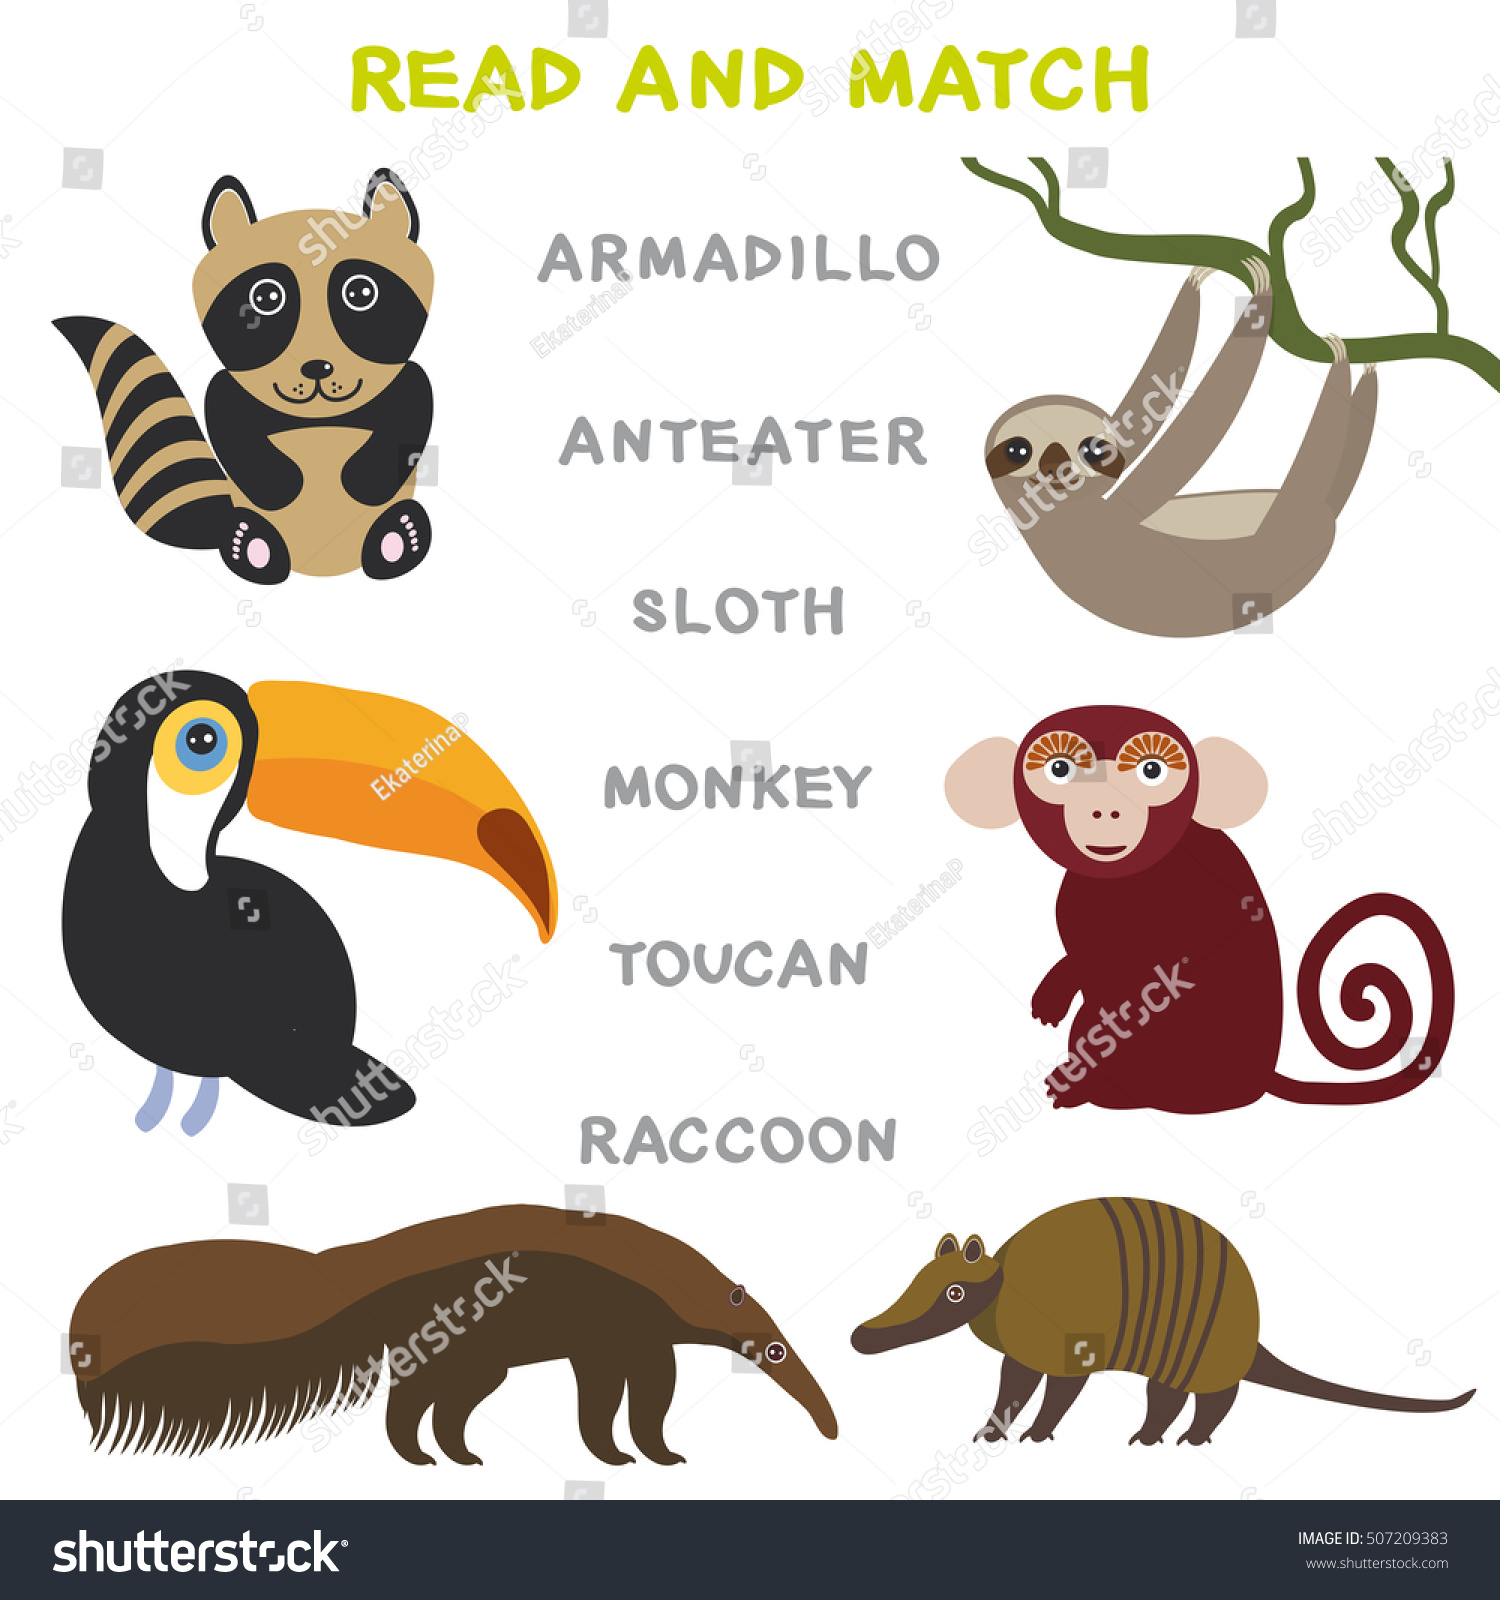 Kids Words Learning Game Worksheet Read And Match Funny Animals Armadillo Anteater Sloth Monkey